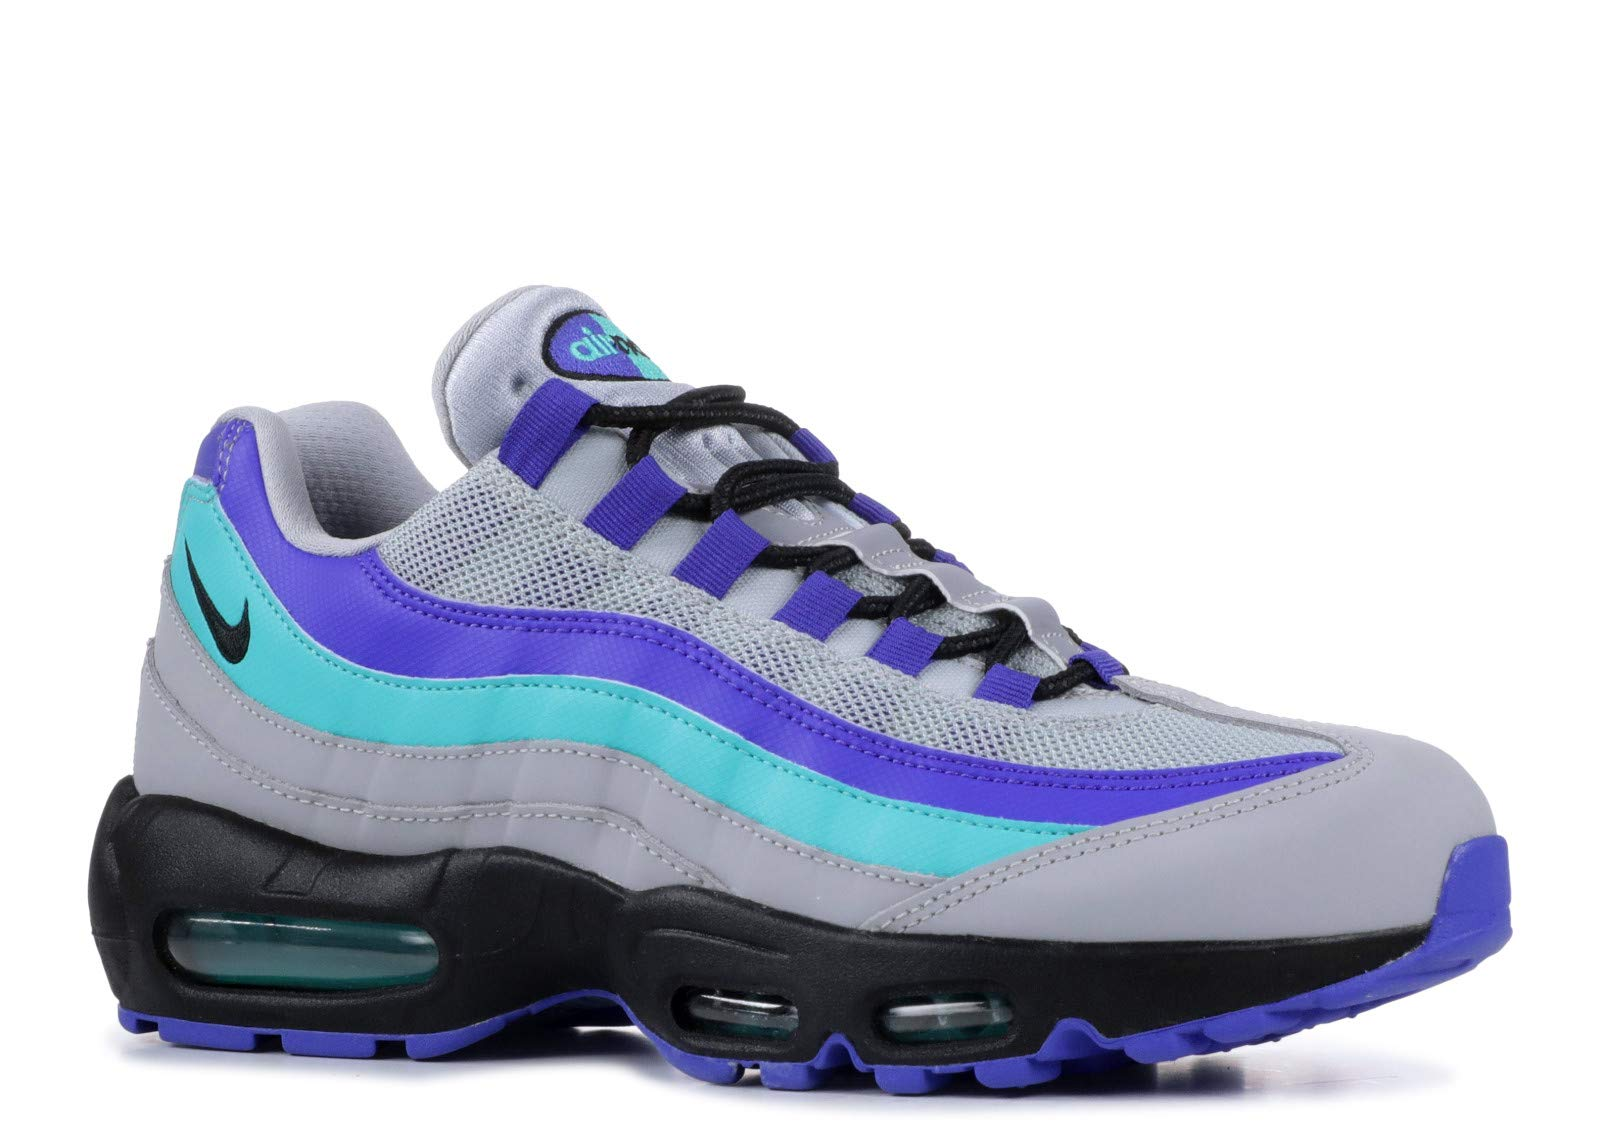 separation shoes 165d6 e5ee1 Galleon - Nike Men s Air Max 95 Premium Running Shoe (11)